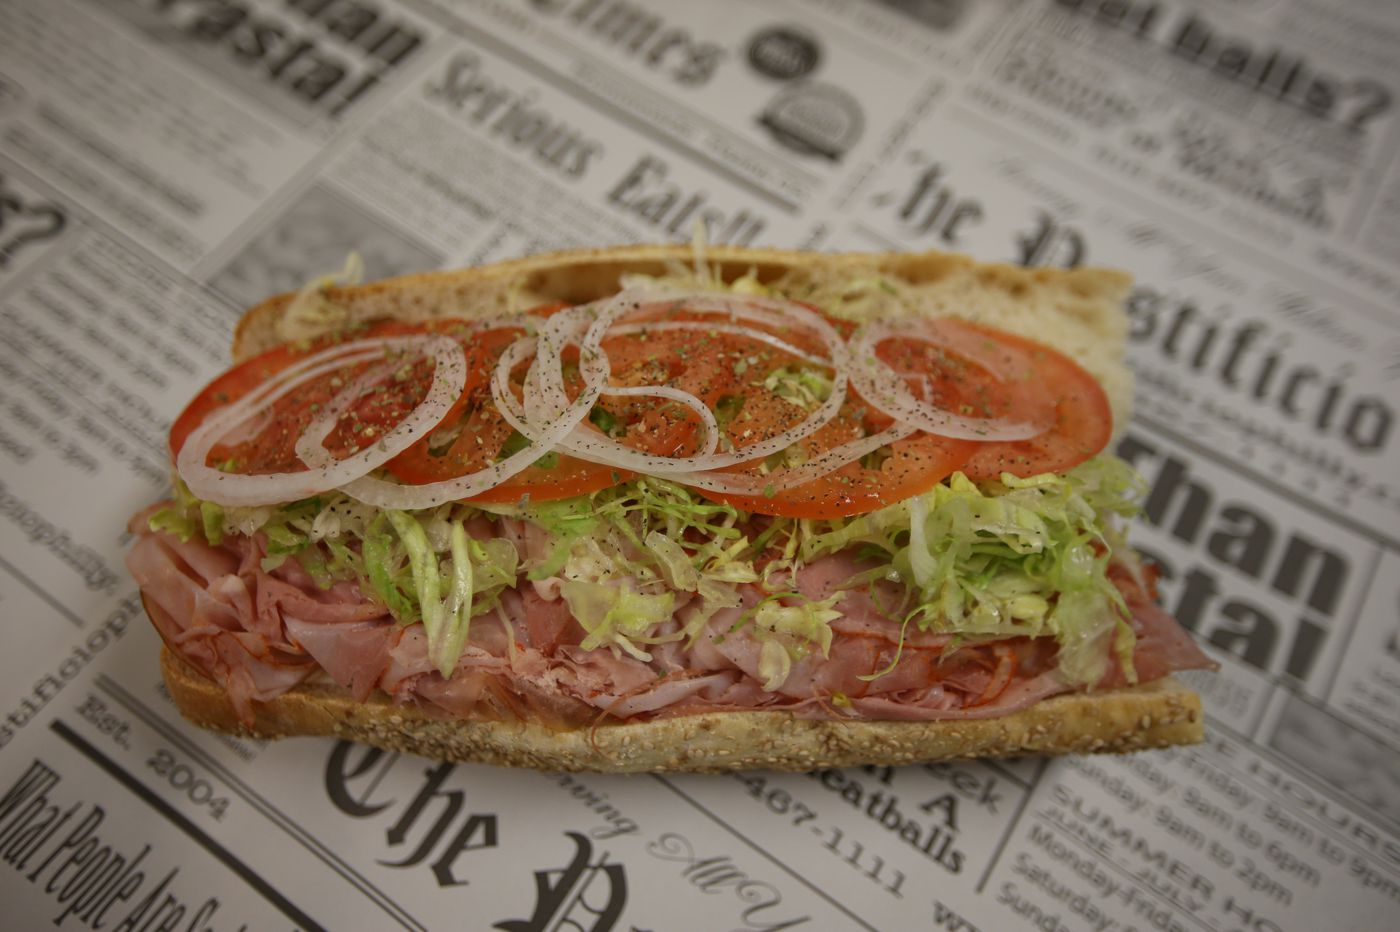 How to stretch your dining dollars in Philly | Craig LaBan